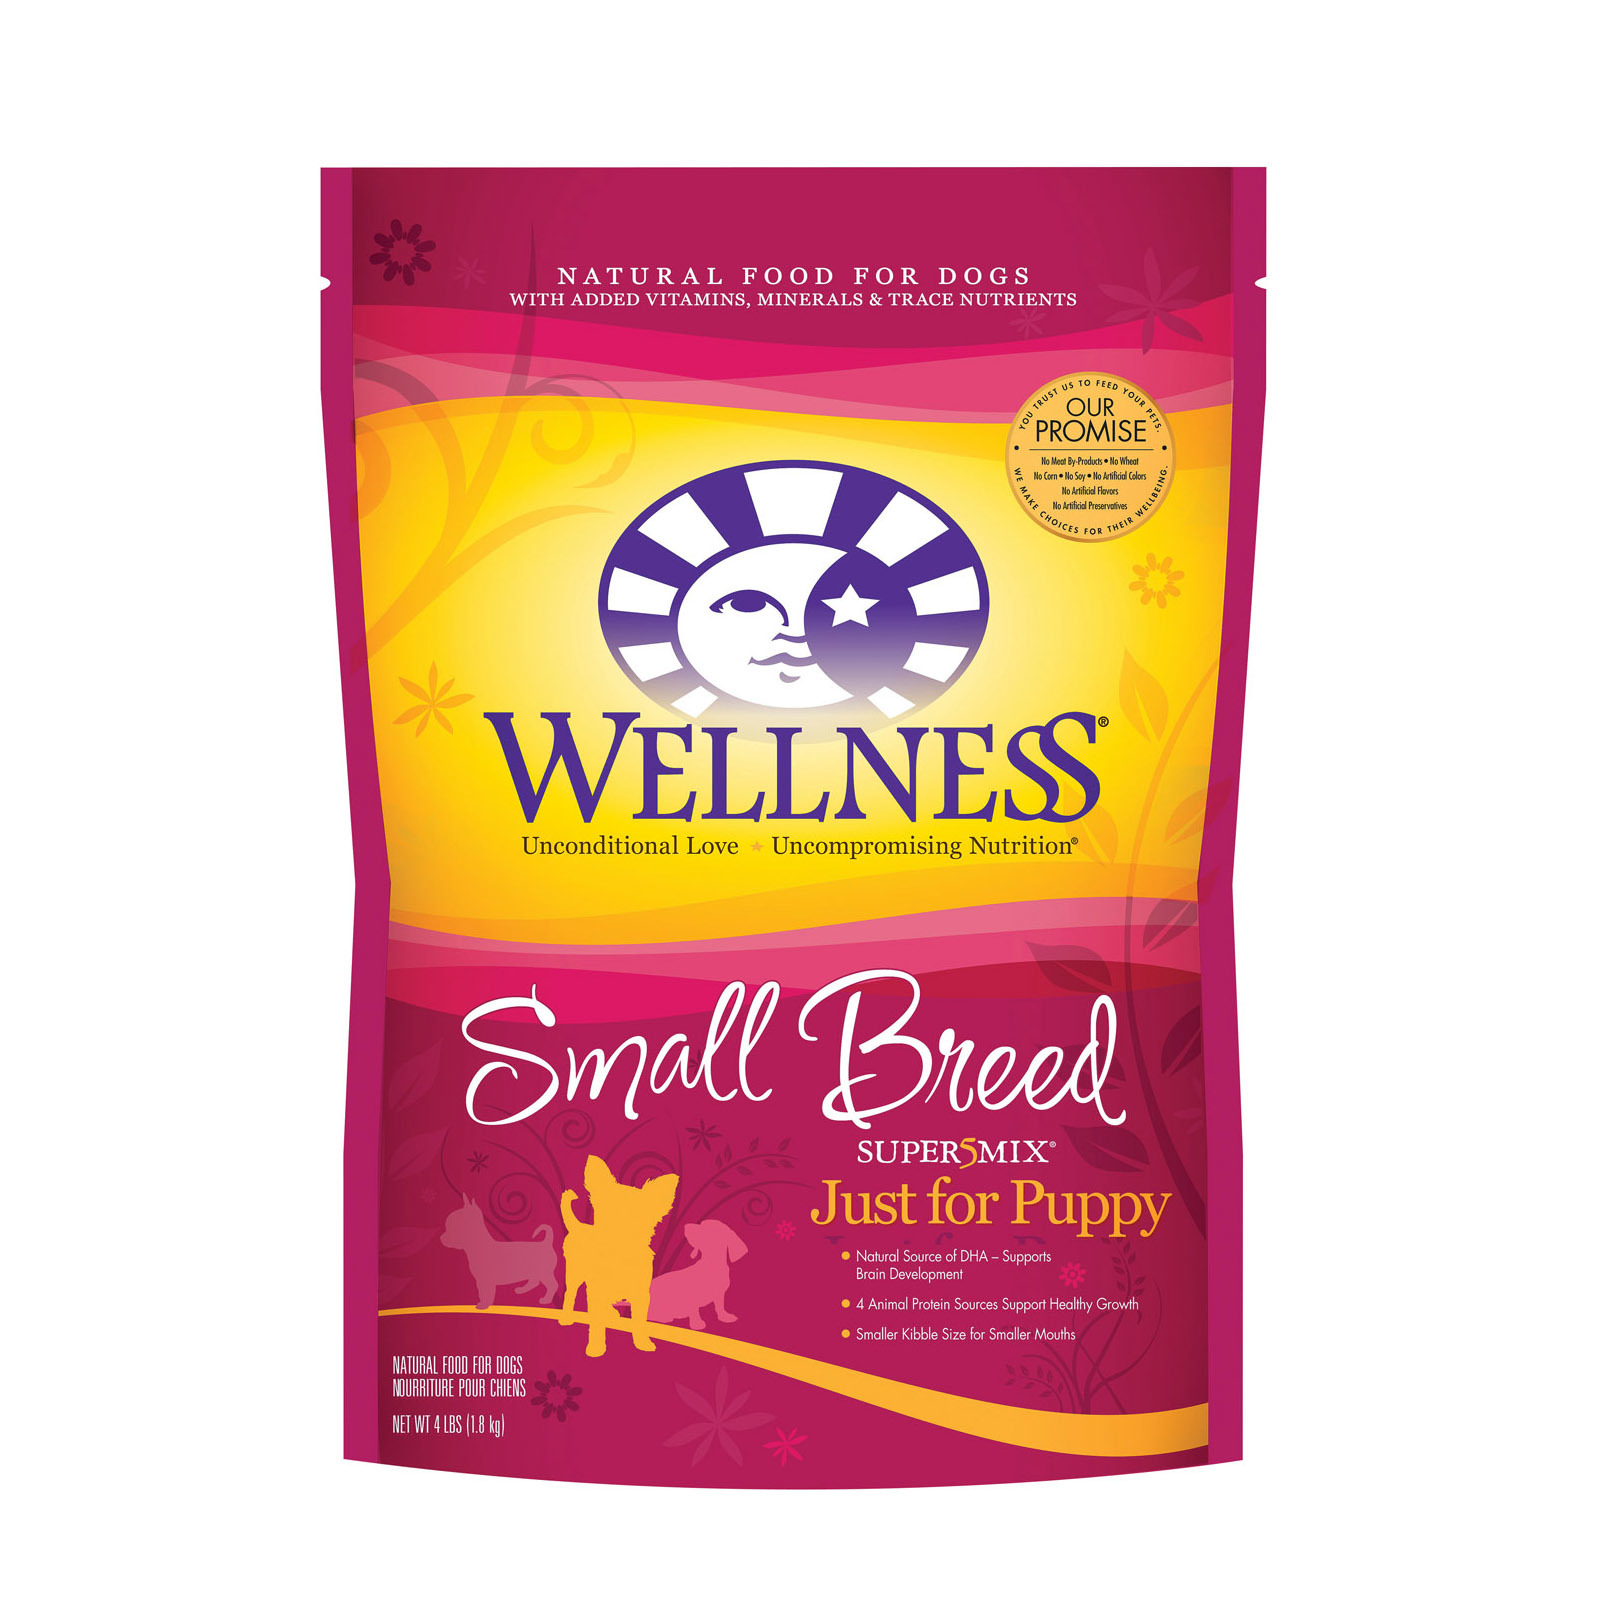 Wellness Pet Products Dog Food - Turkey - Oatmeal and Salmon Meal Recipe - Case of 6 - 4 lb.